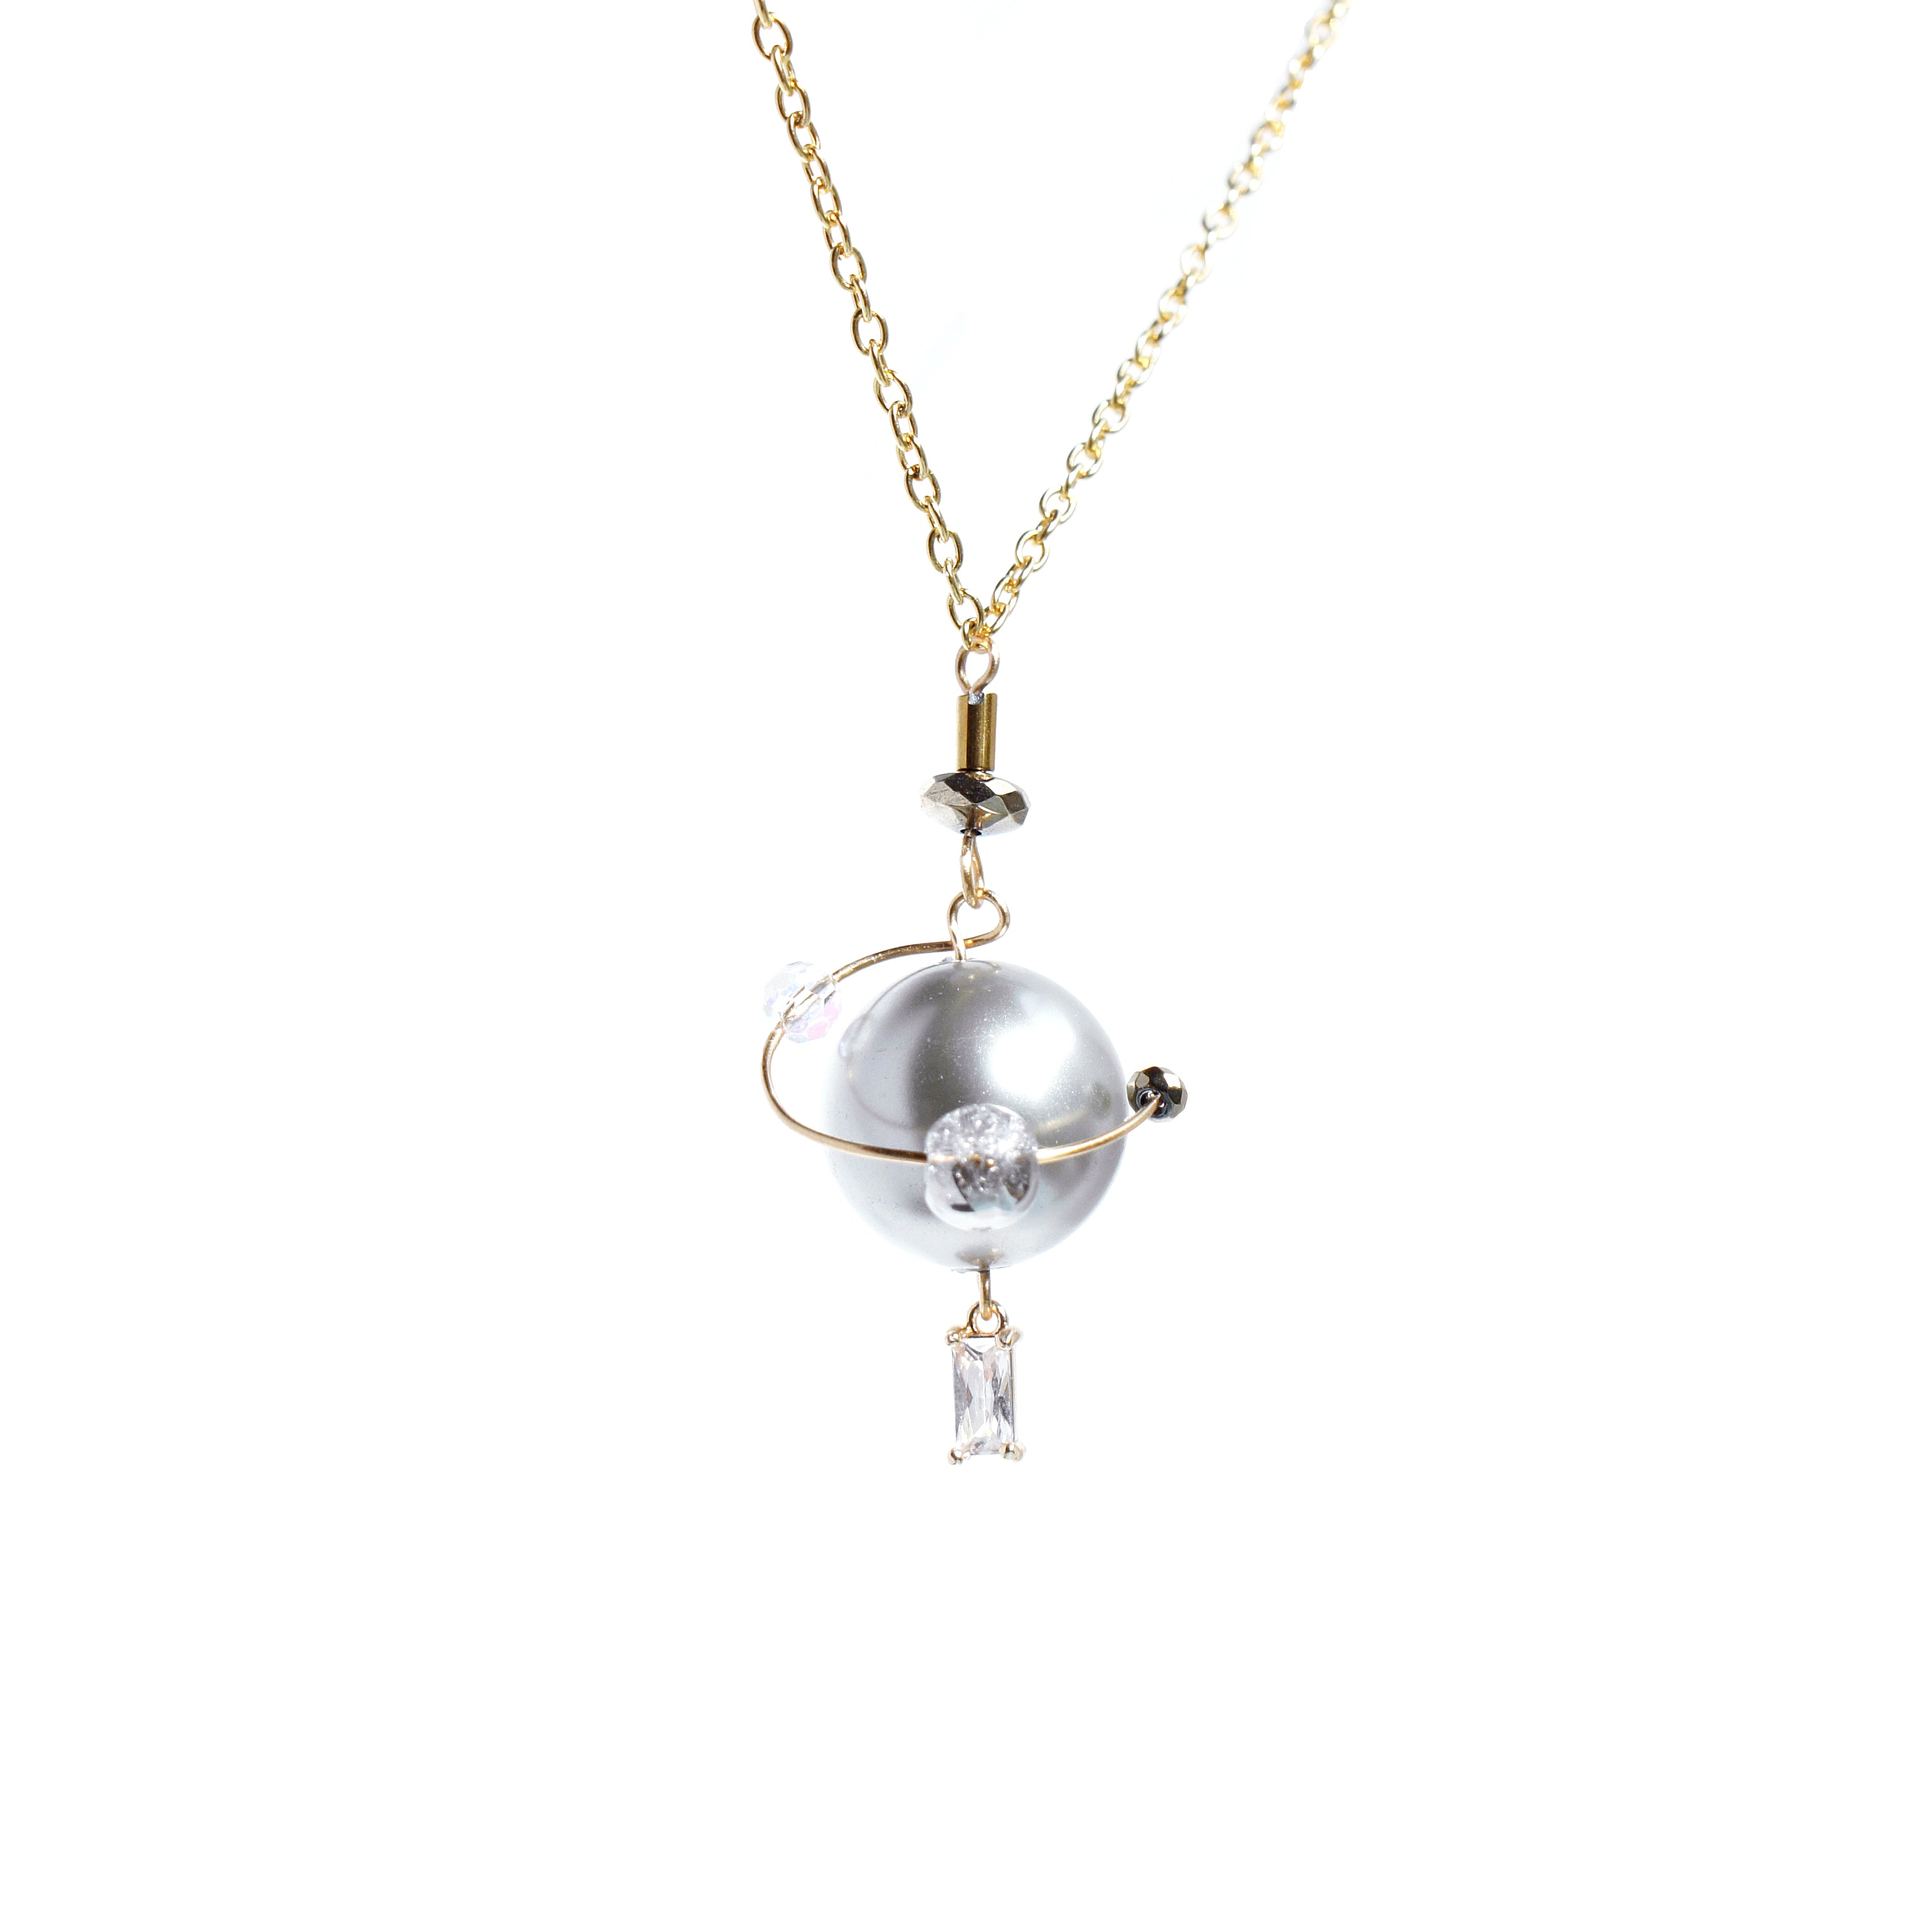 In My Orbit Pearl and Crystal Charm Necklace